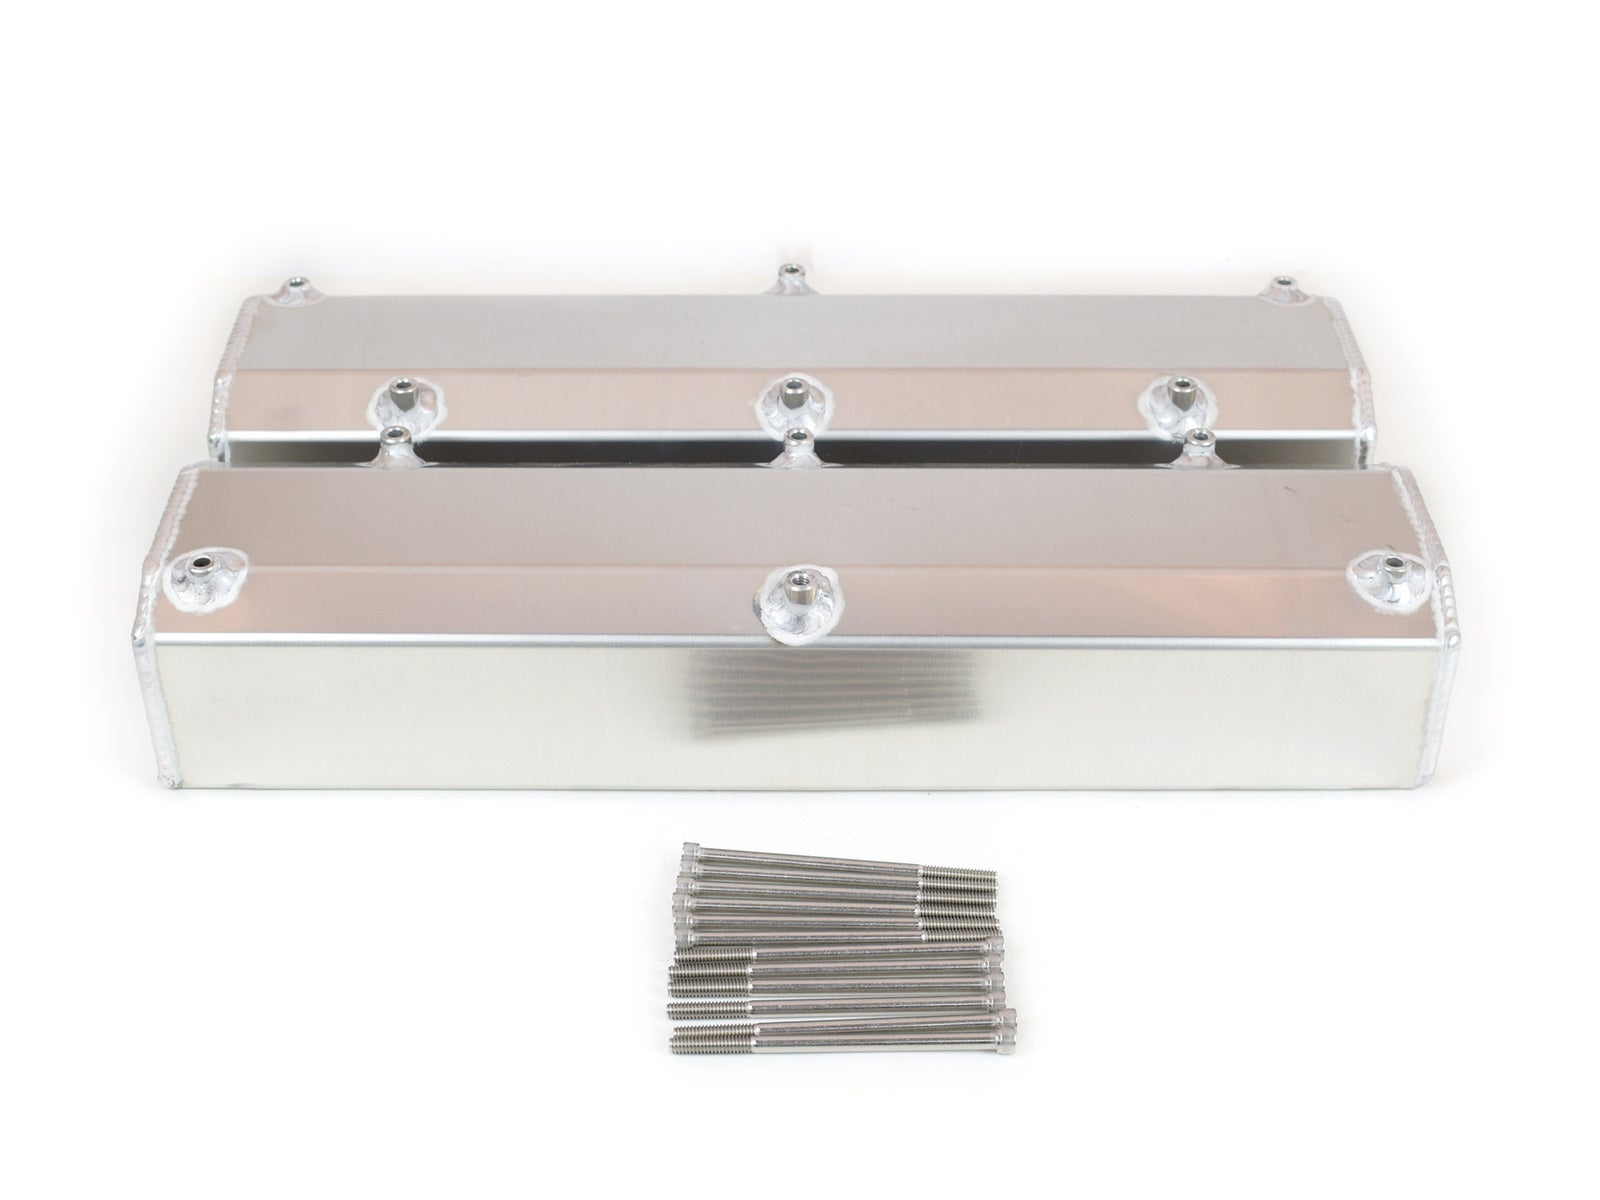 Canton Fabricated Aluminum Valve Cover For 302/351W Ford Small Block Mercury Montego 1969 CN65300